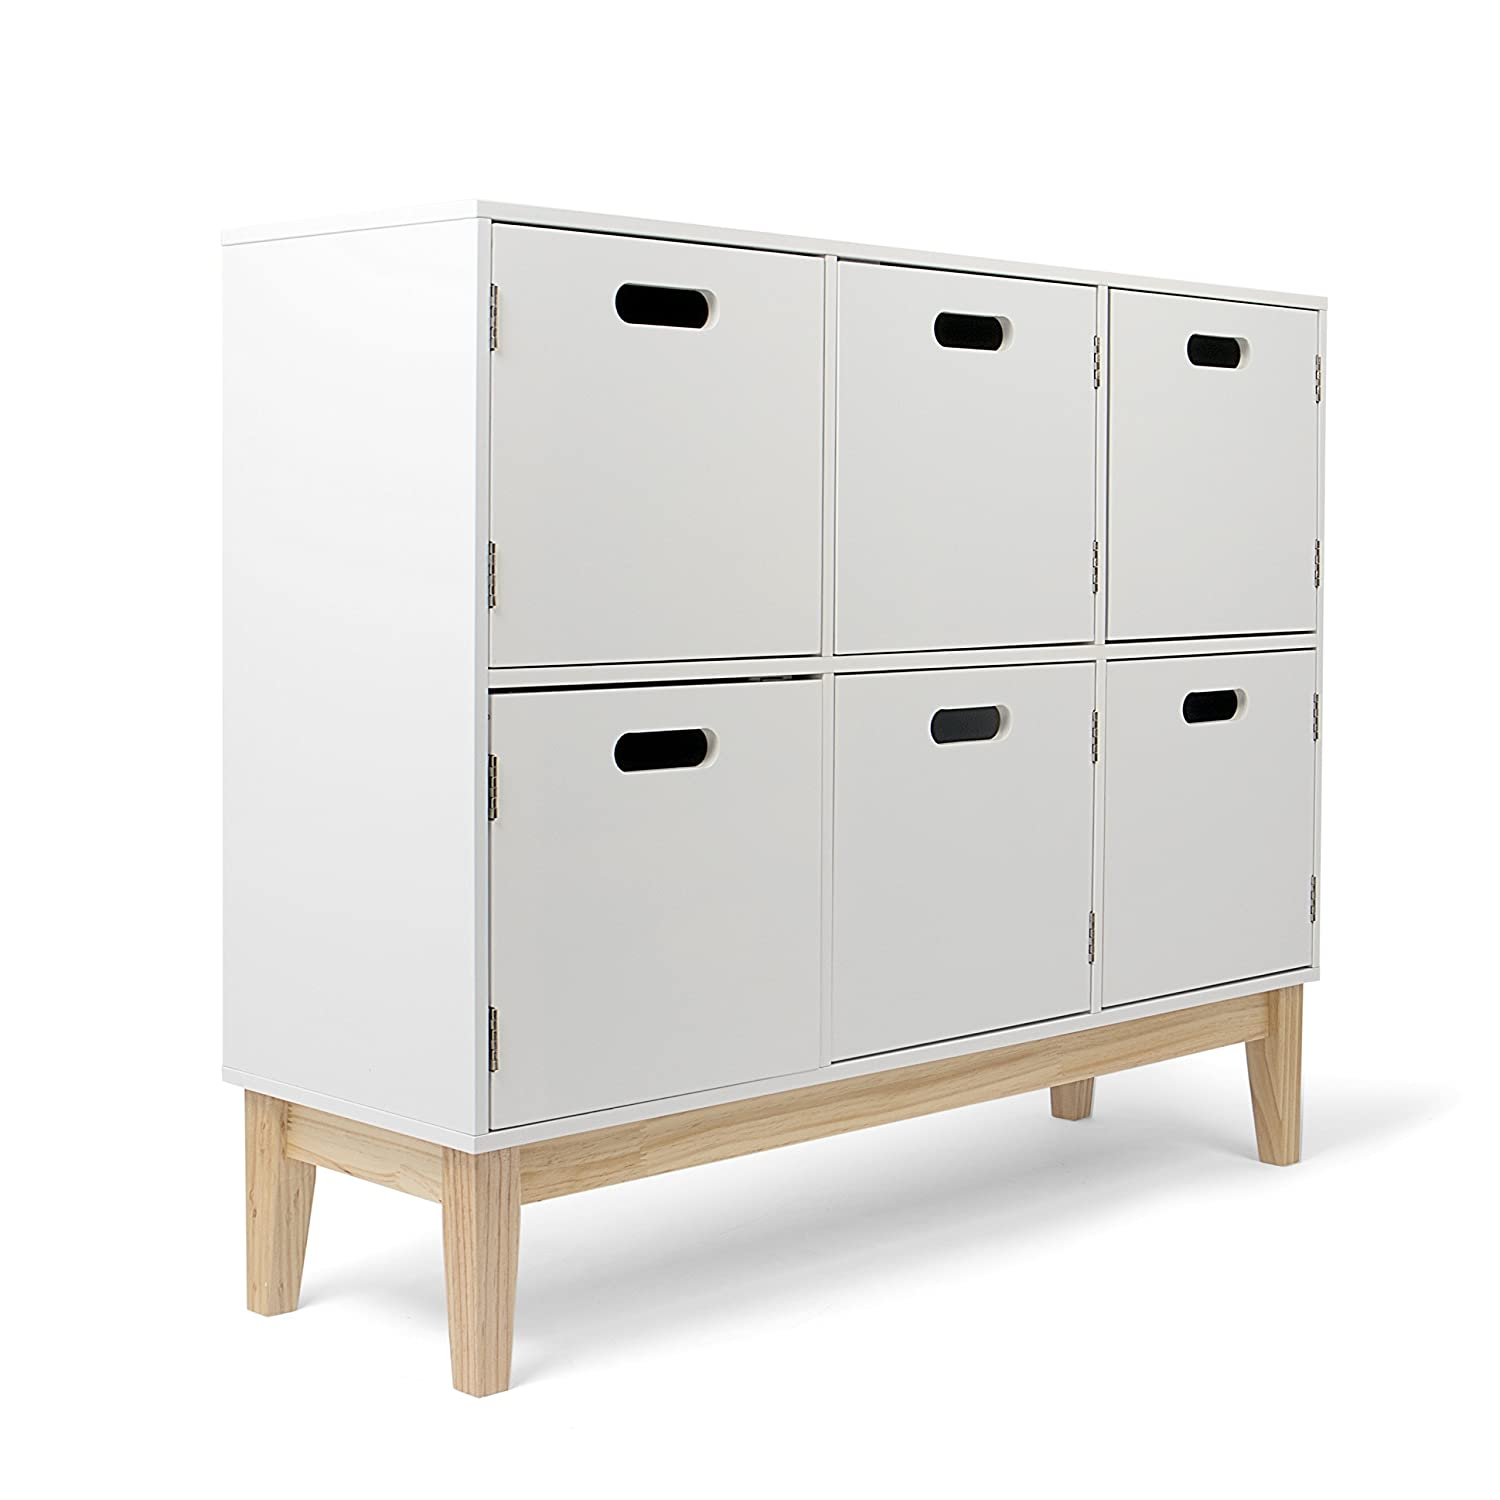 Kledio Chest of Drawers for Children's Bedroom in White – Children's Bedroom Furniture – White Chest of Drawers Made of Wood with 6 Compartments KL-4452